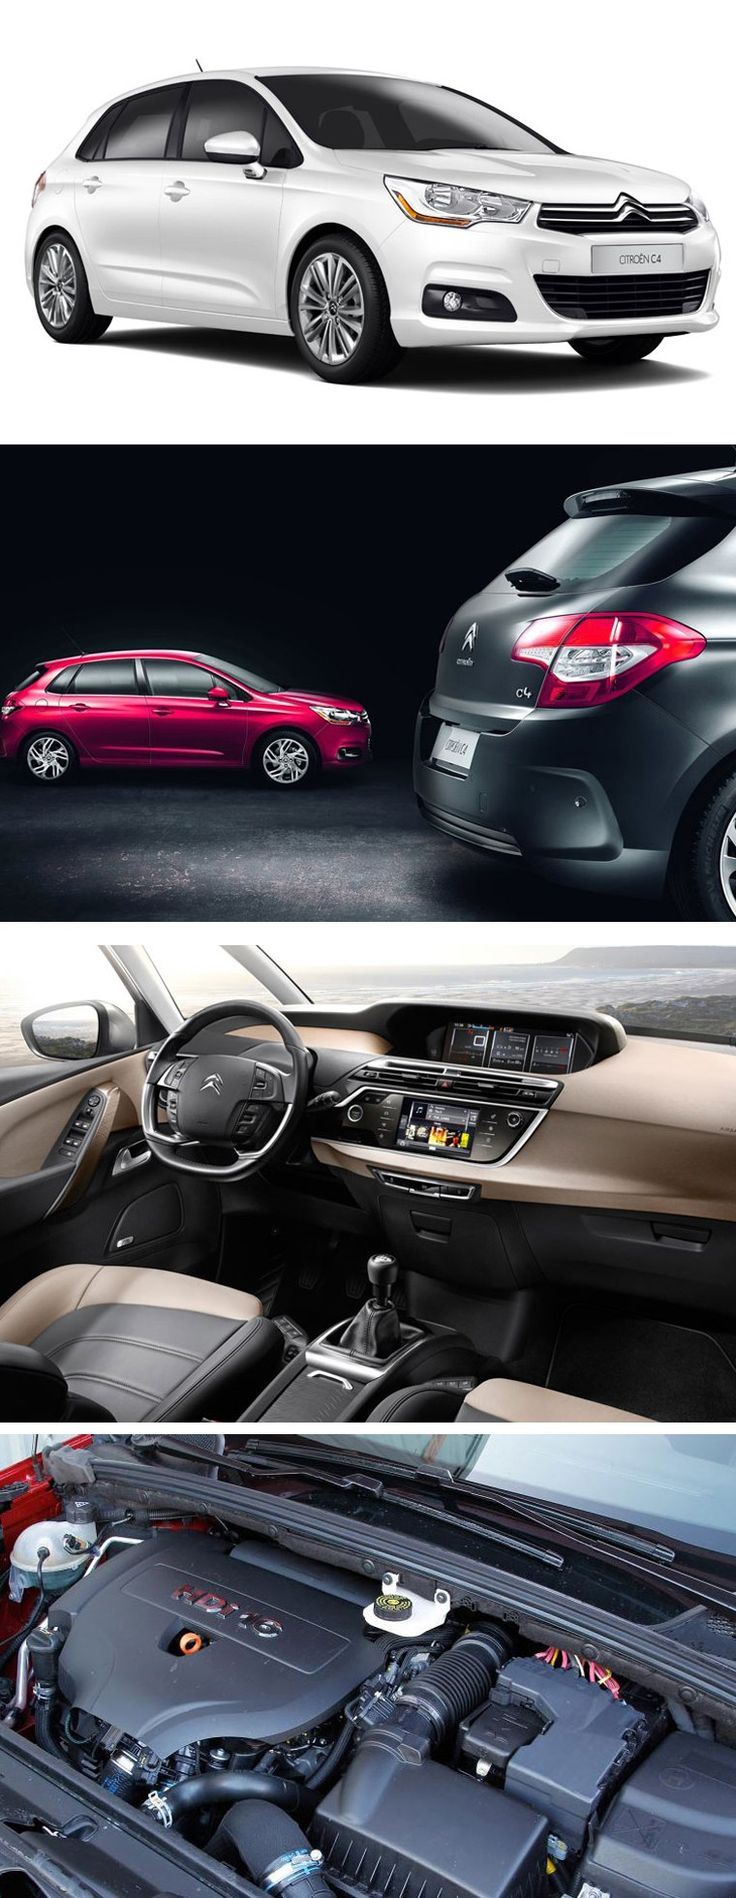 Citroen C4 – Perky or Slinky? It is now featuring state-of-the-art, more frugal, #Citroen #petrol and #dieselengines.  For Details Visit http://www.globalengines.co.uk/blog/citroen-c4-perky-or-slinky/